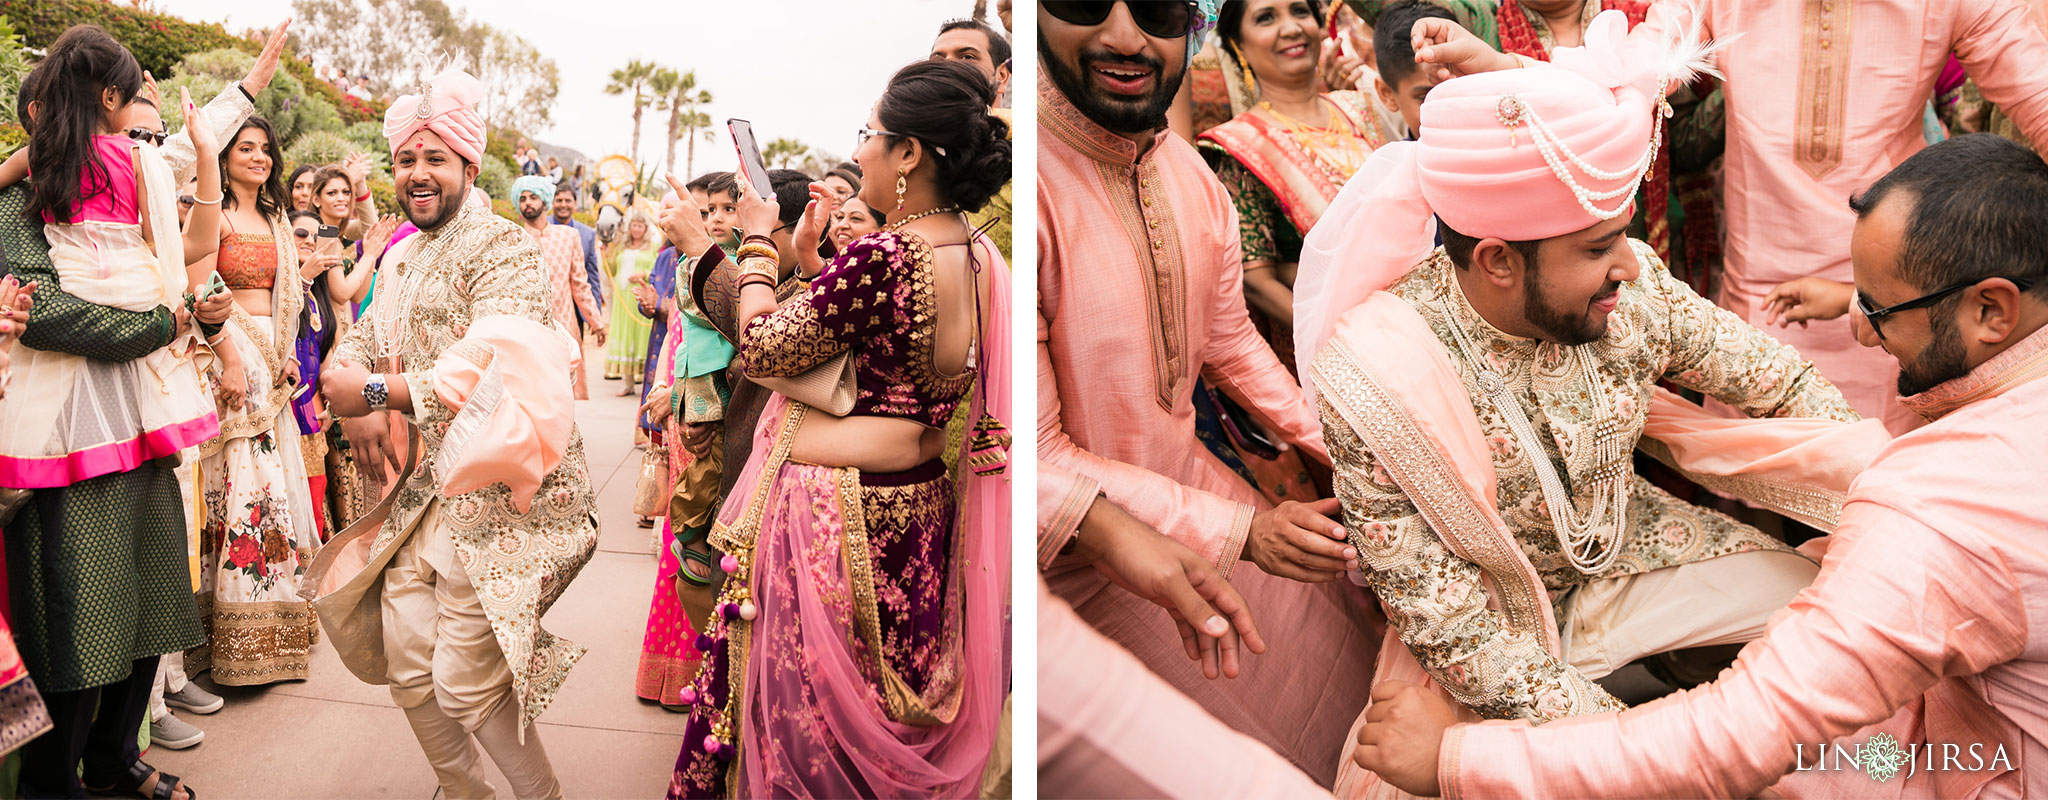 023 montage laguna beach indian baraat wedding photography